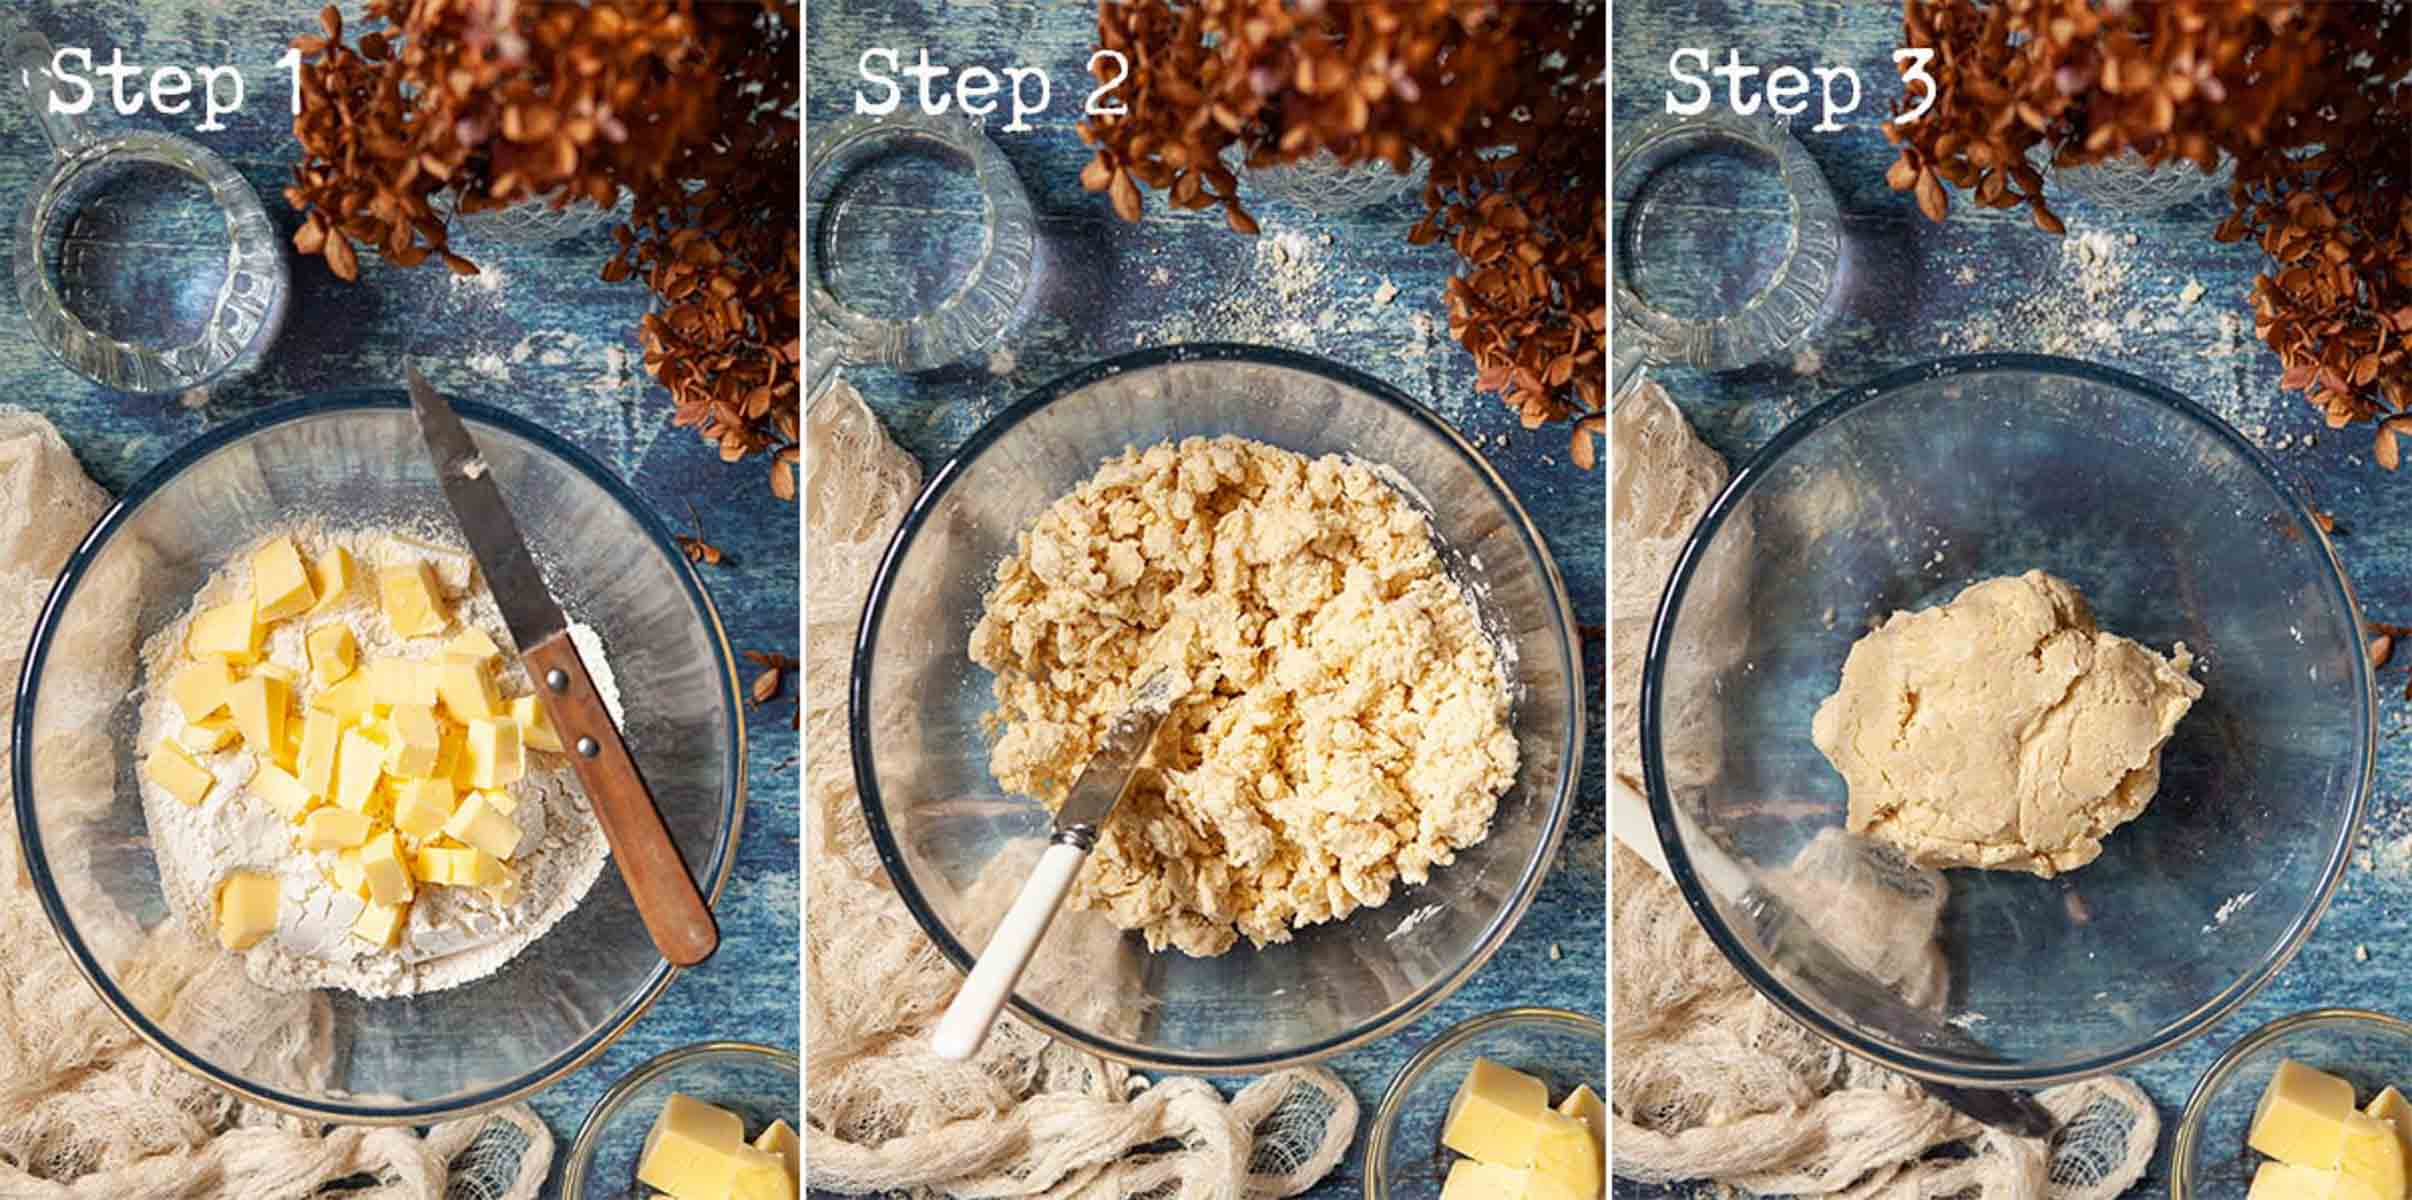 Collage of images showing shortcrust pastry being made by hand